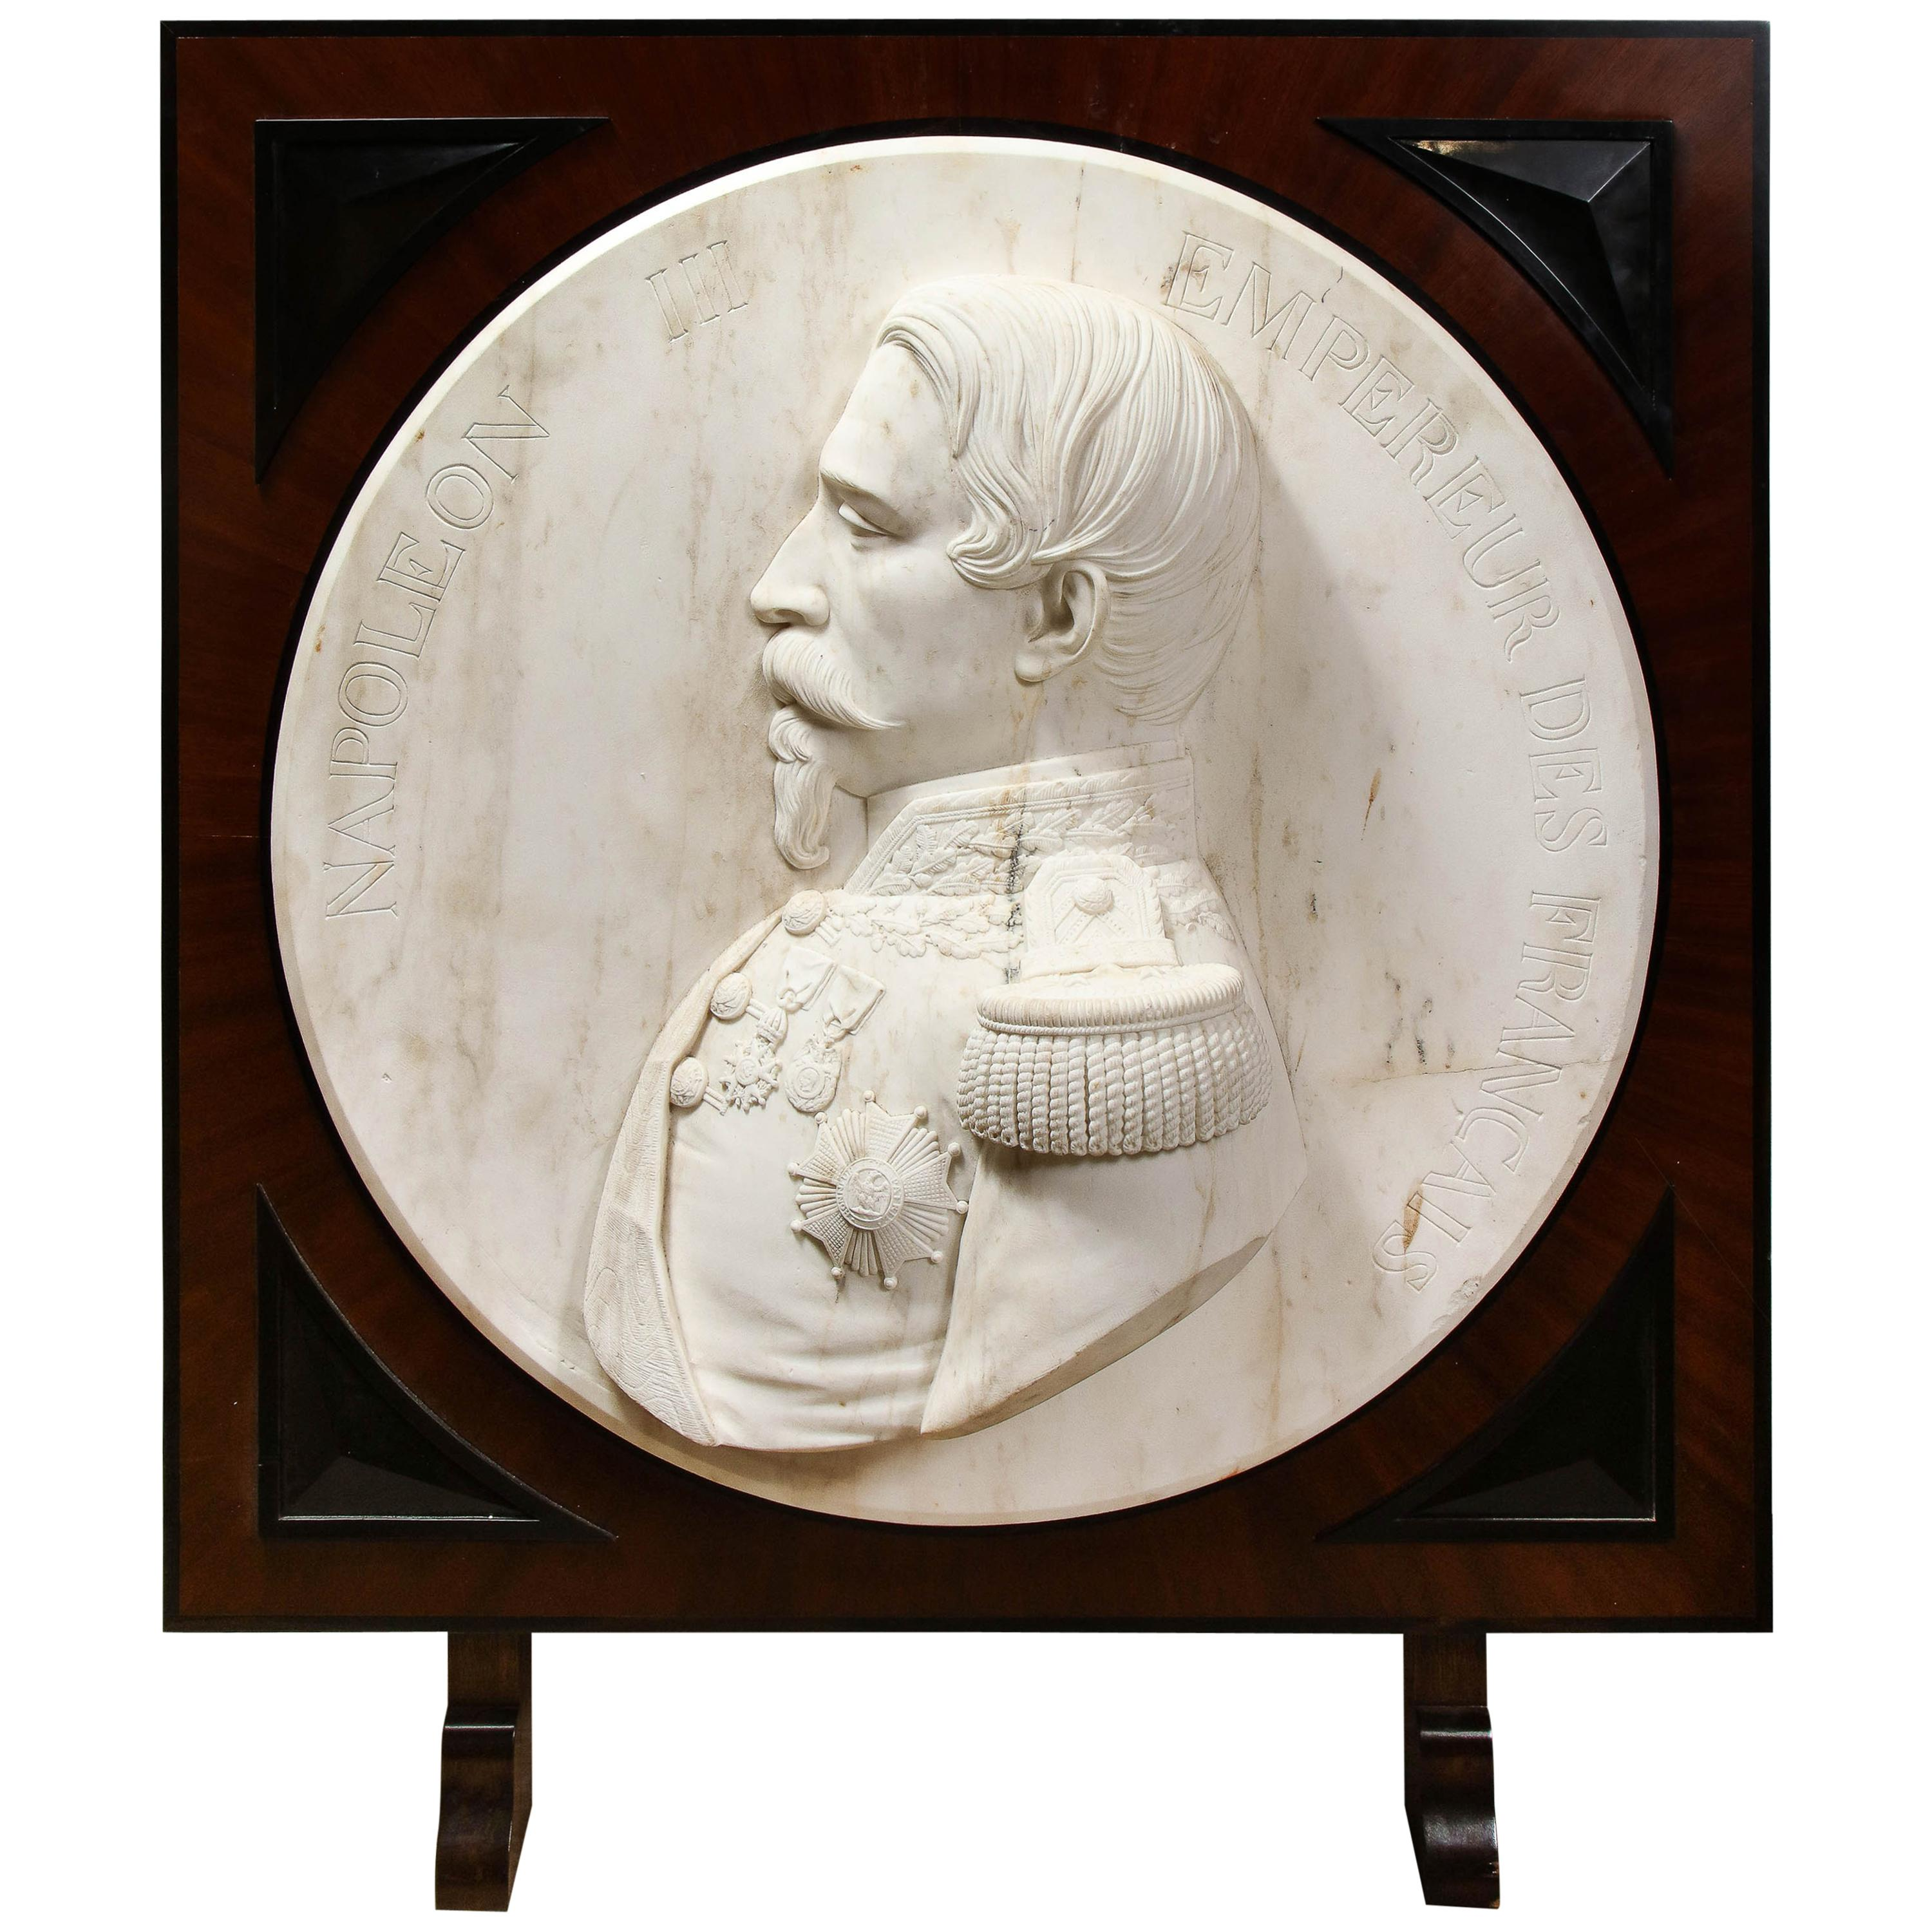 Museum Quality French White Marble Roundel Relief of Emperor Napoleon III, 1860